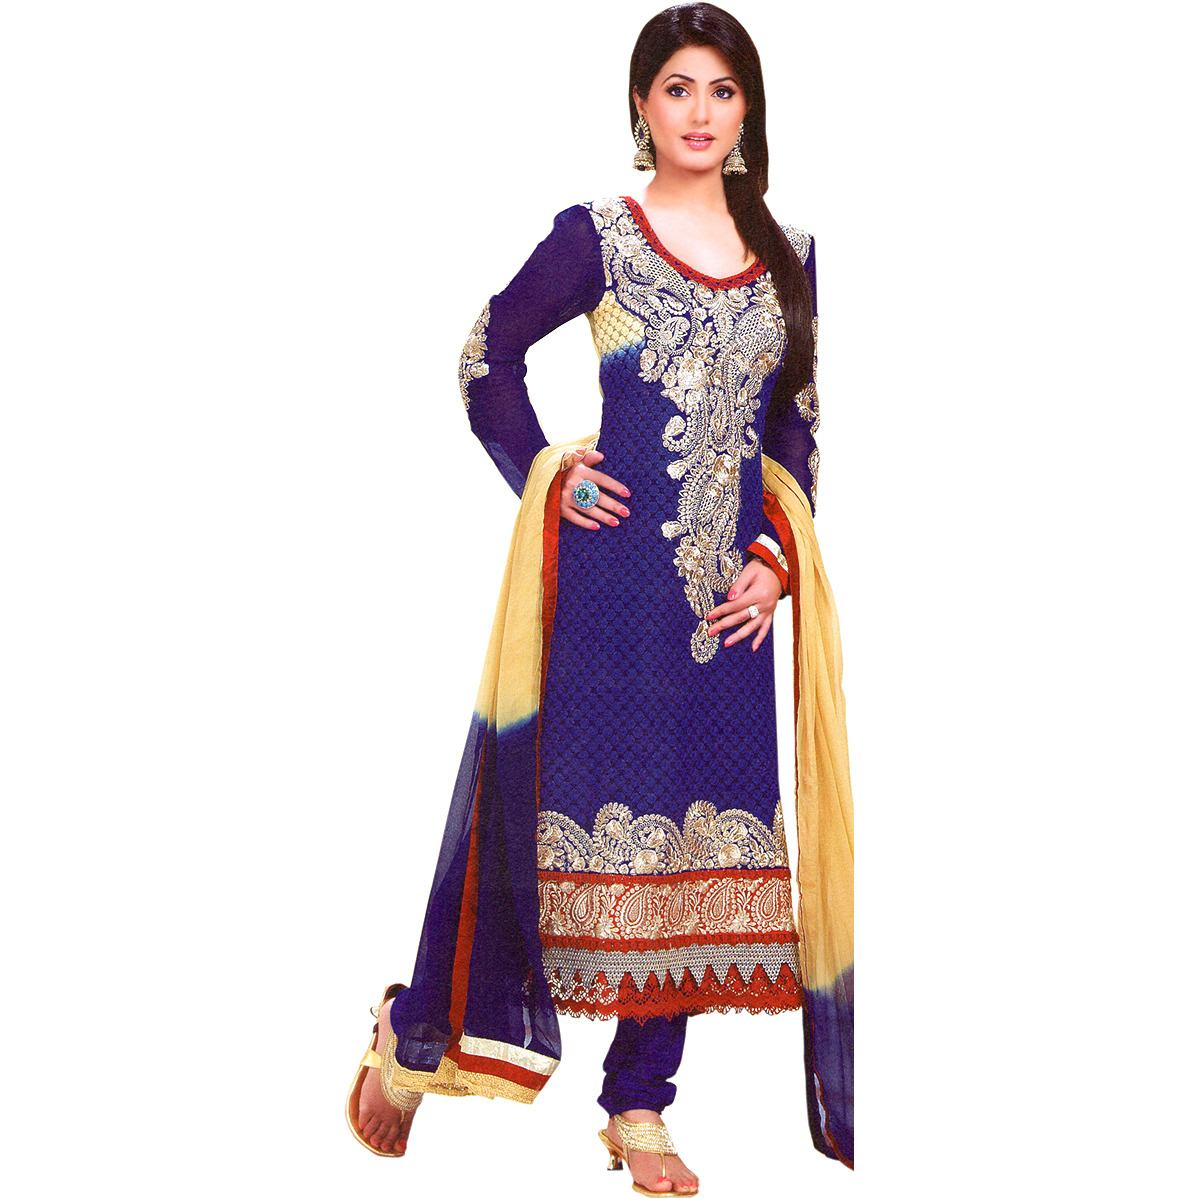 Twilight-Blue Choodidaar Kameez Suit with Floral Booties and Giant Paisley Patch